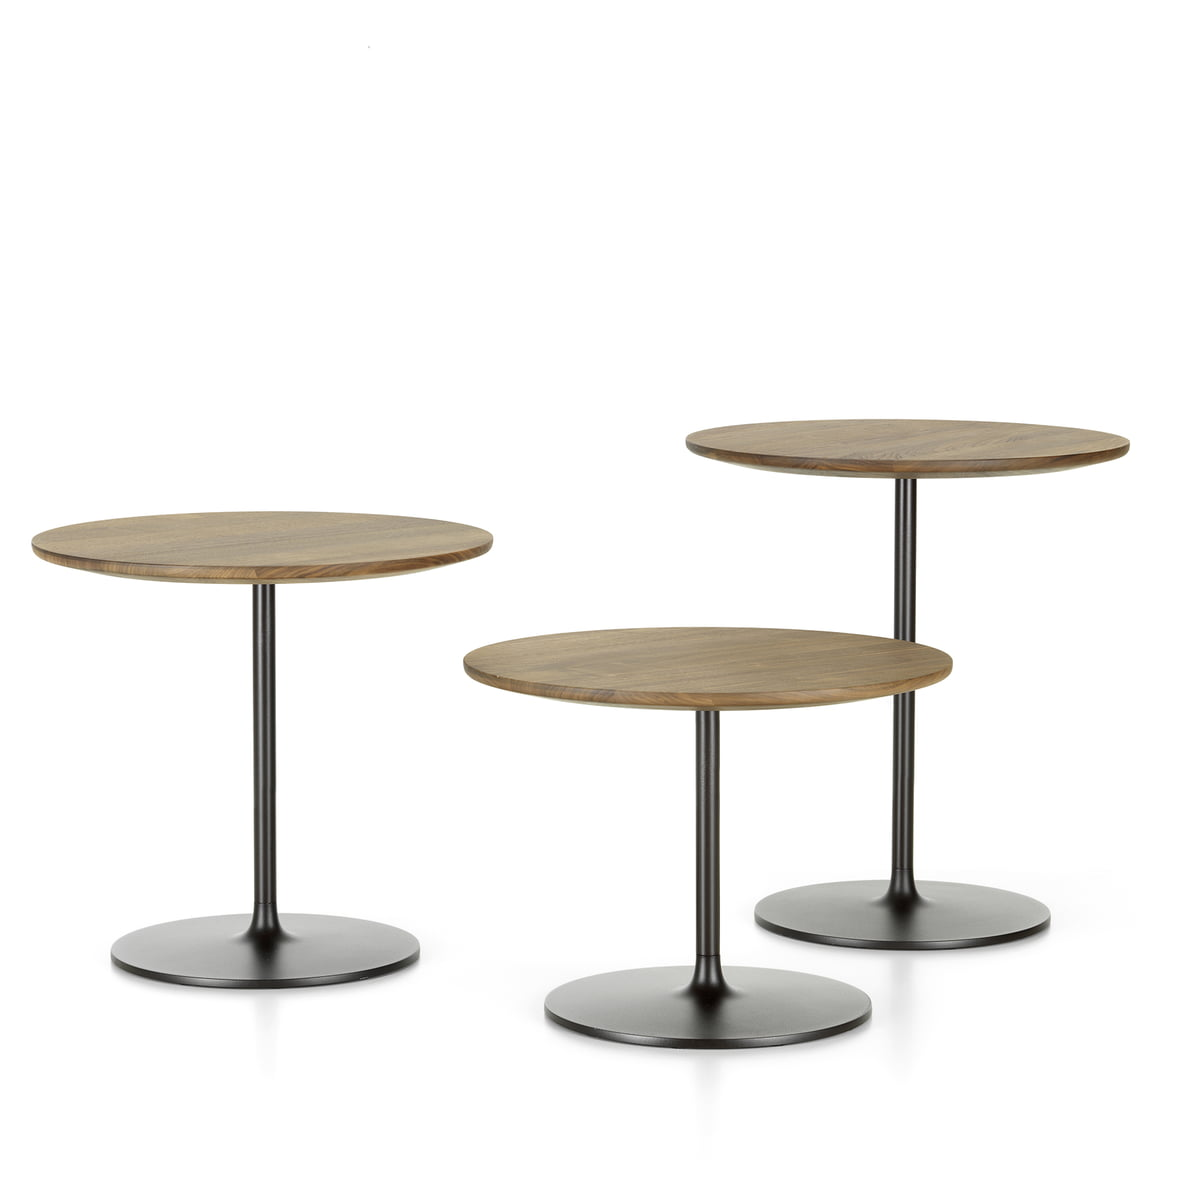 on sale 7a51b 7fc94 Vitra - Occasional Low Table 35, aluminium / chocolate